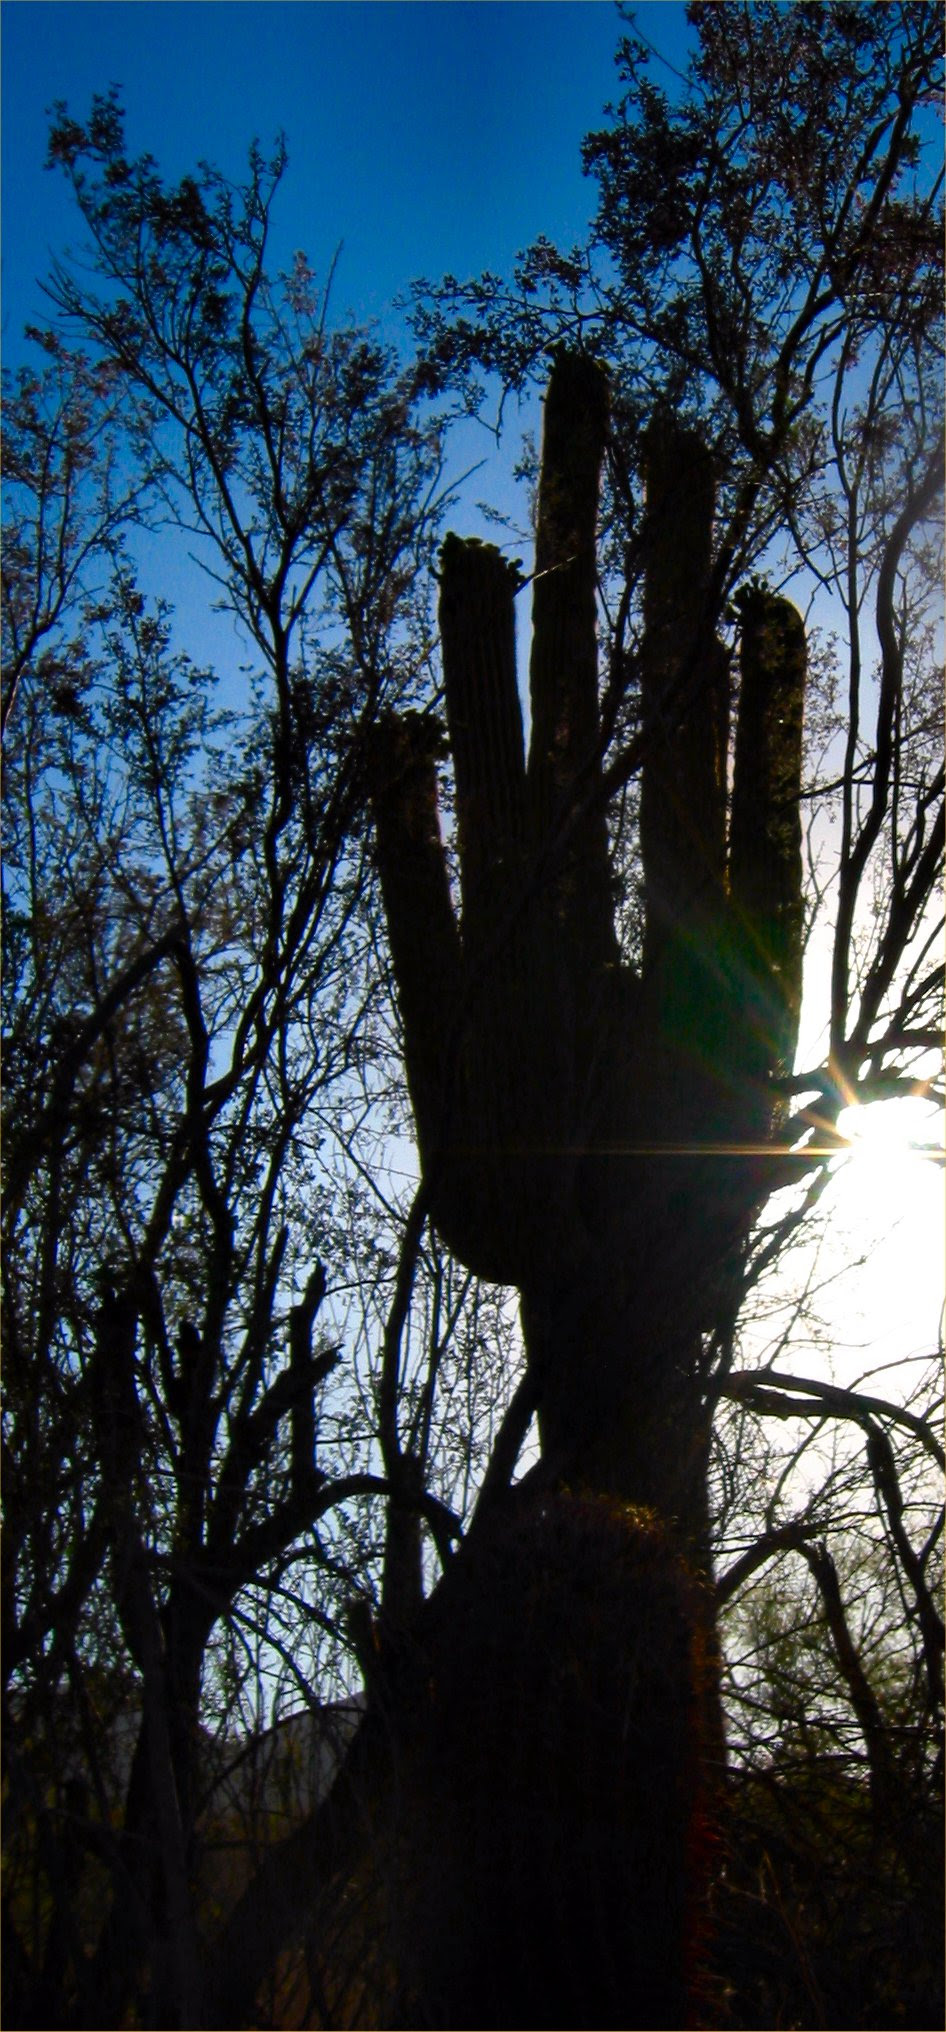 Saguaro Hand in AZ desert at Sunrise backlit by the over exposed sun. Photo - soul-amp.com